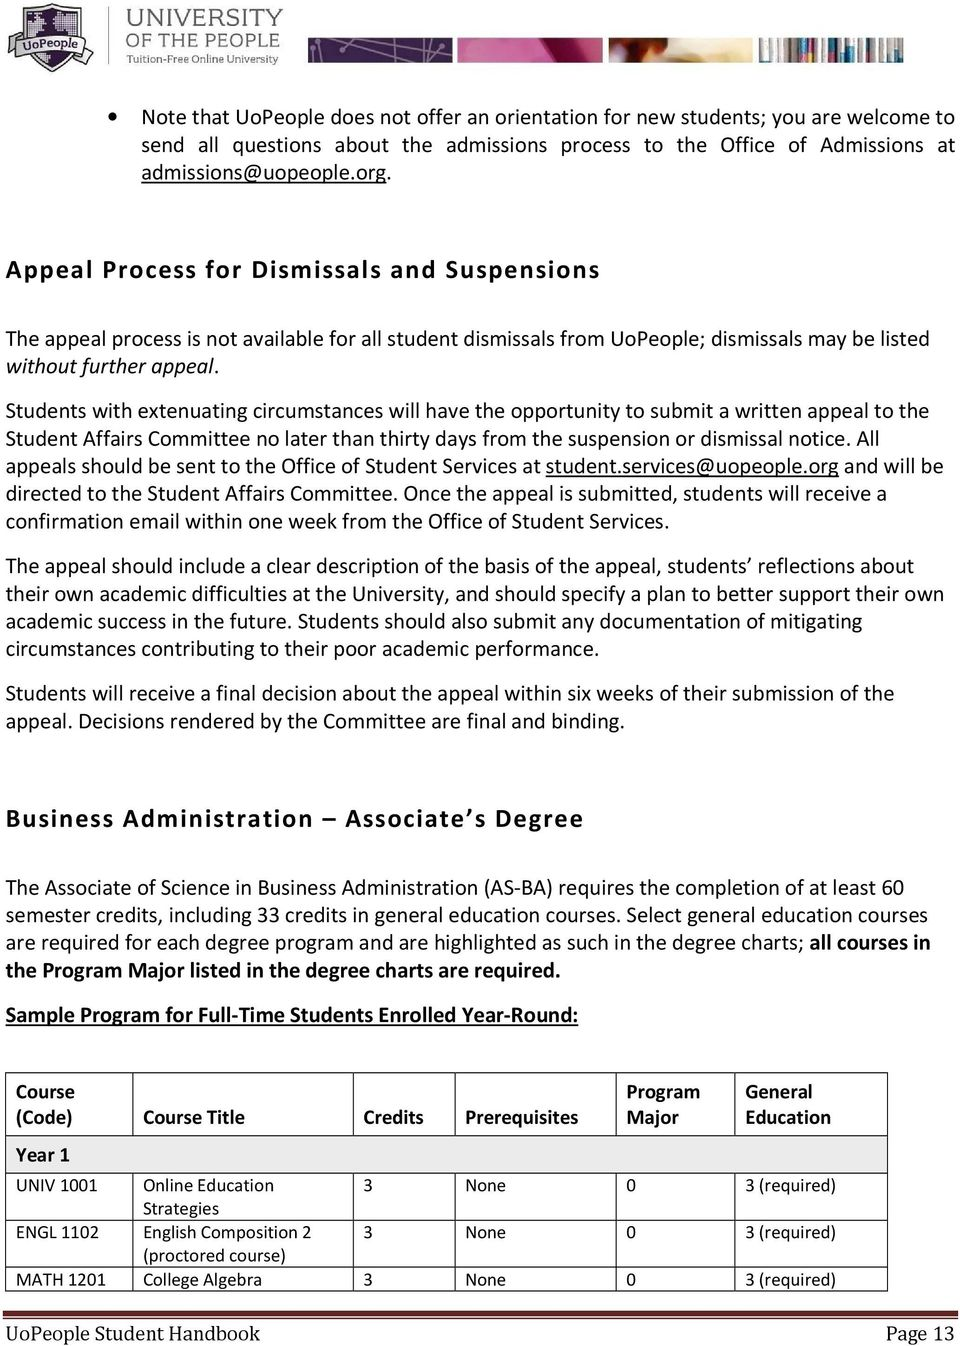 Students with extenuating circumstances will have the opportunity to submit a written appeal to the Student Affairs Committee no later than thirty days from the suspension or dismissal notice.